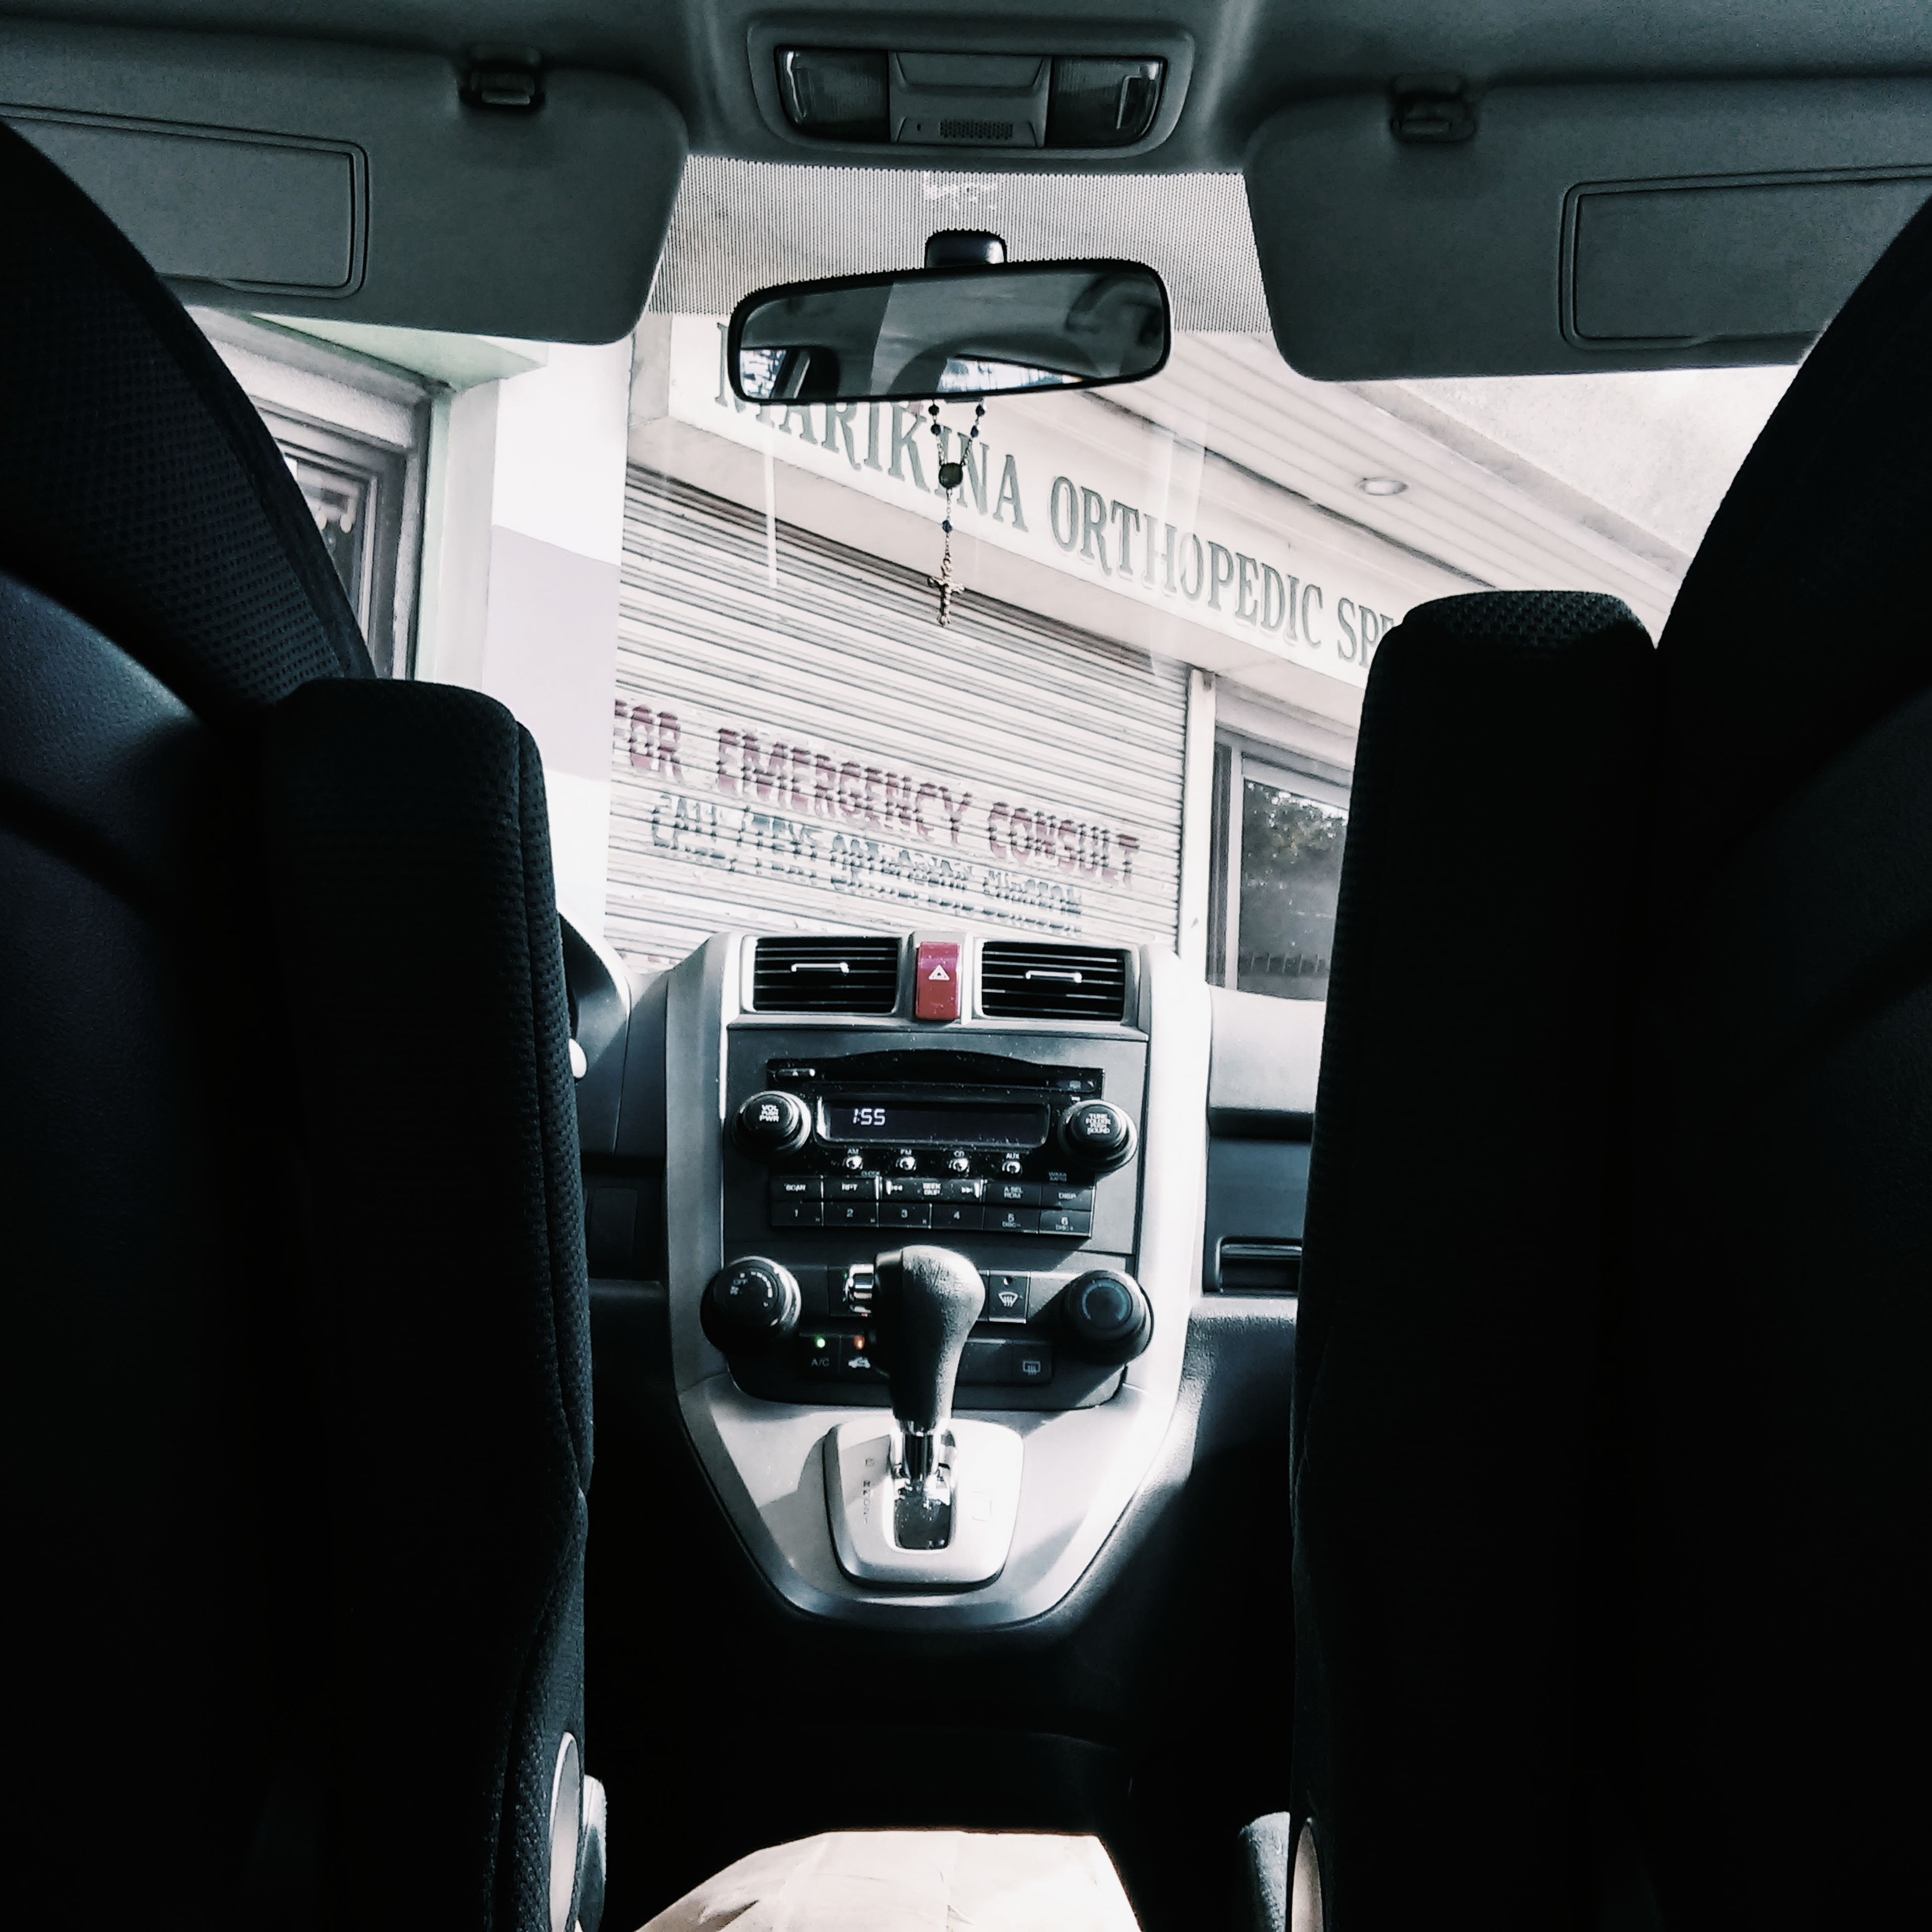 transportation, vehicle interior, mode of transport, travel, control, technology, car, car interior, indoors, vehicle seat, no people, control panel, architecture, gearshift, day